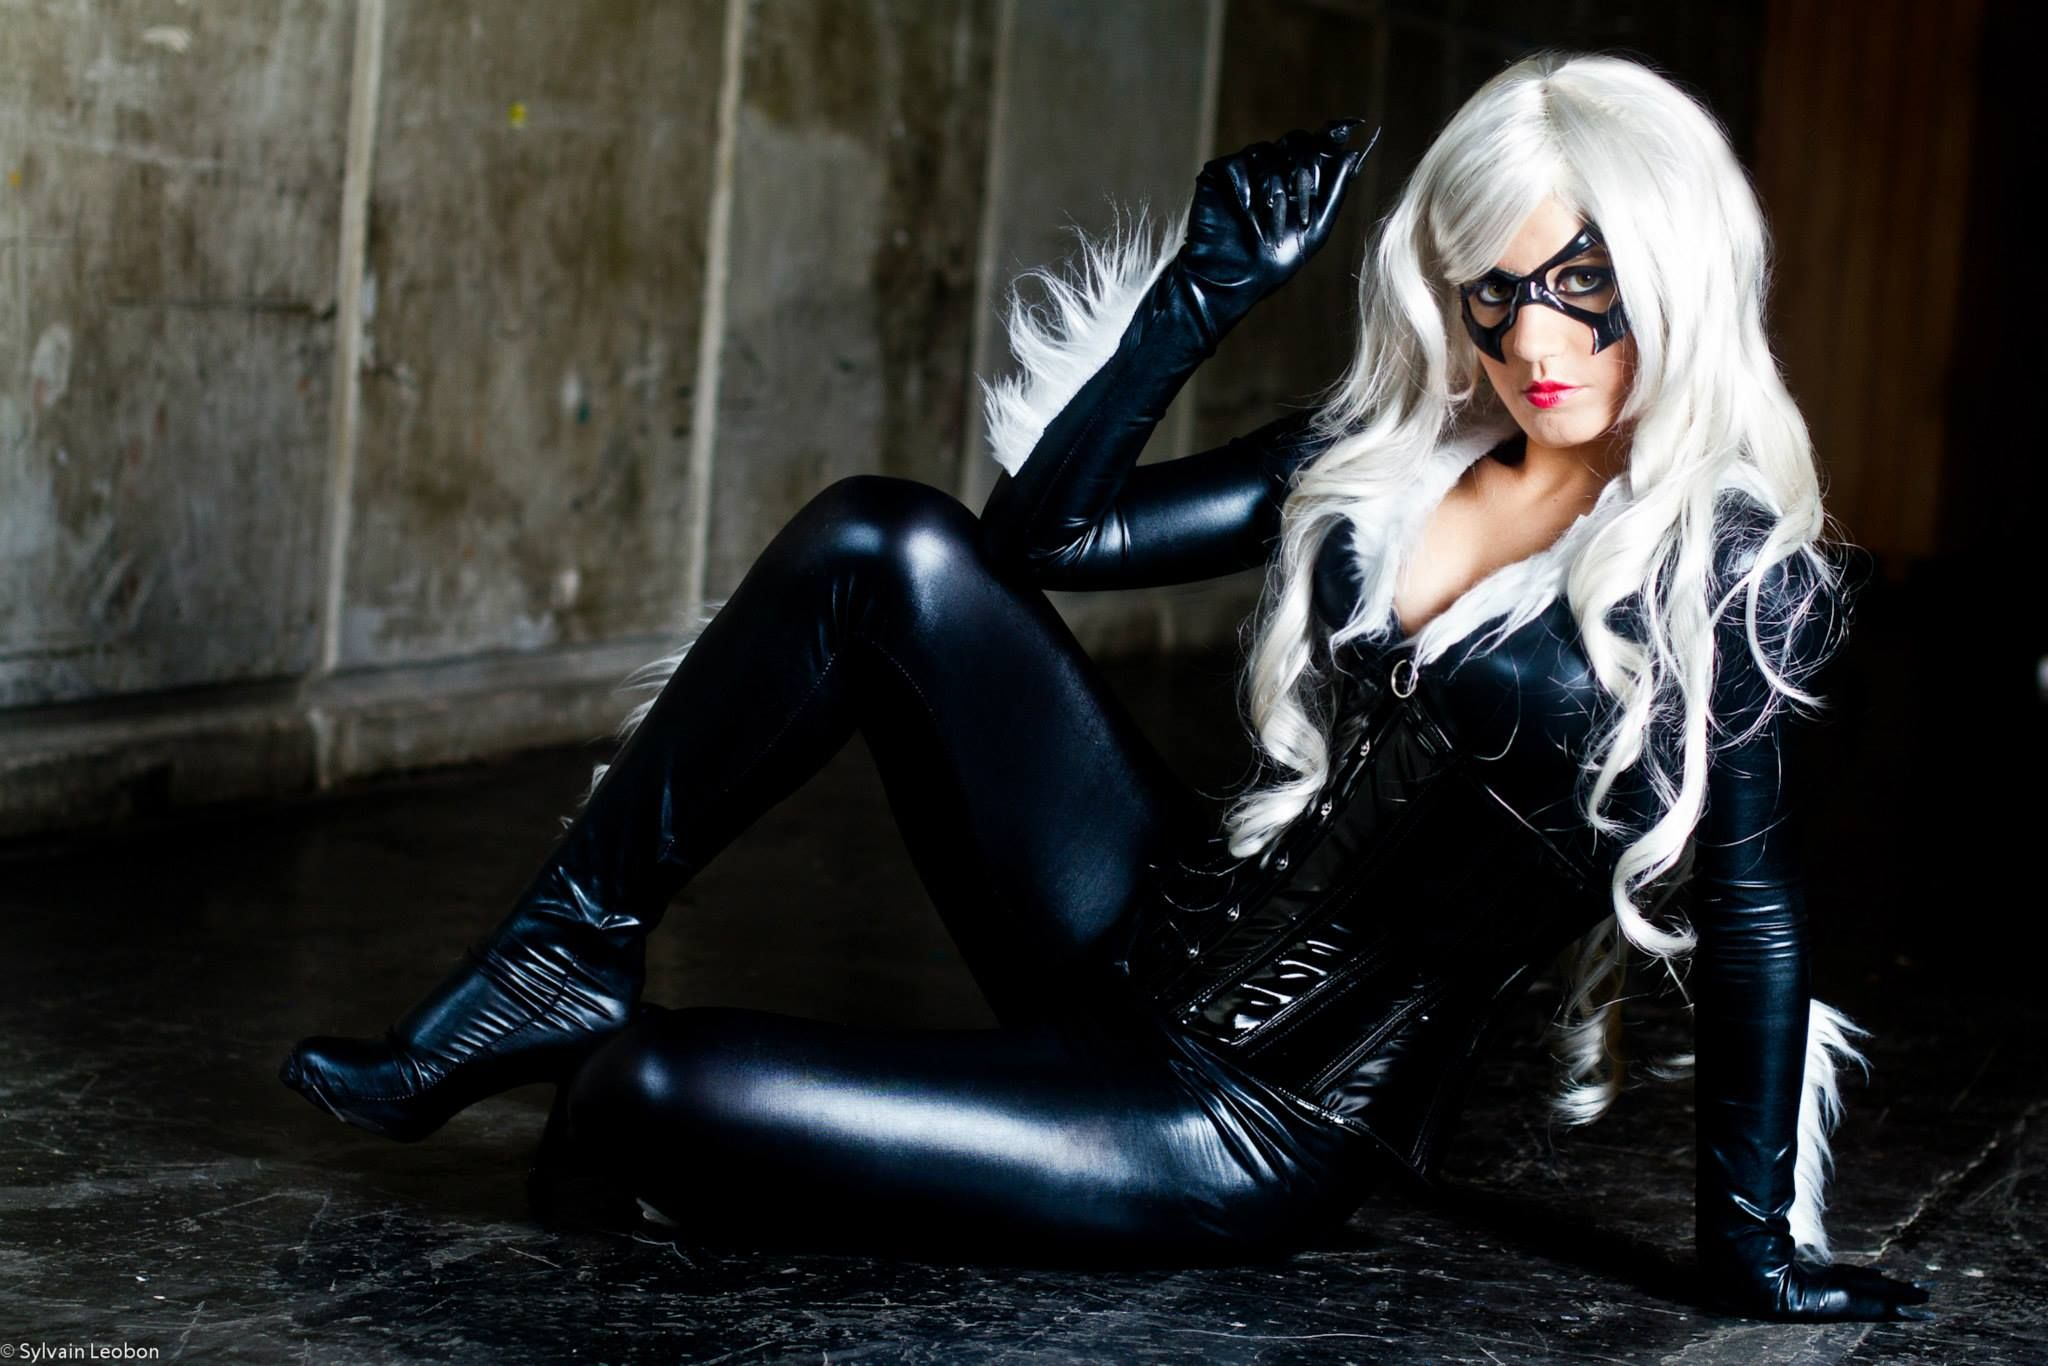 black cat from spiderman marvel comic series cosplay